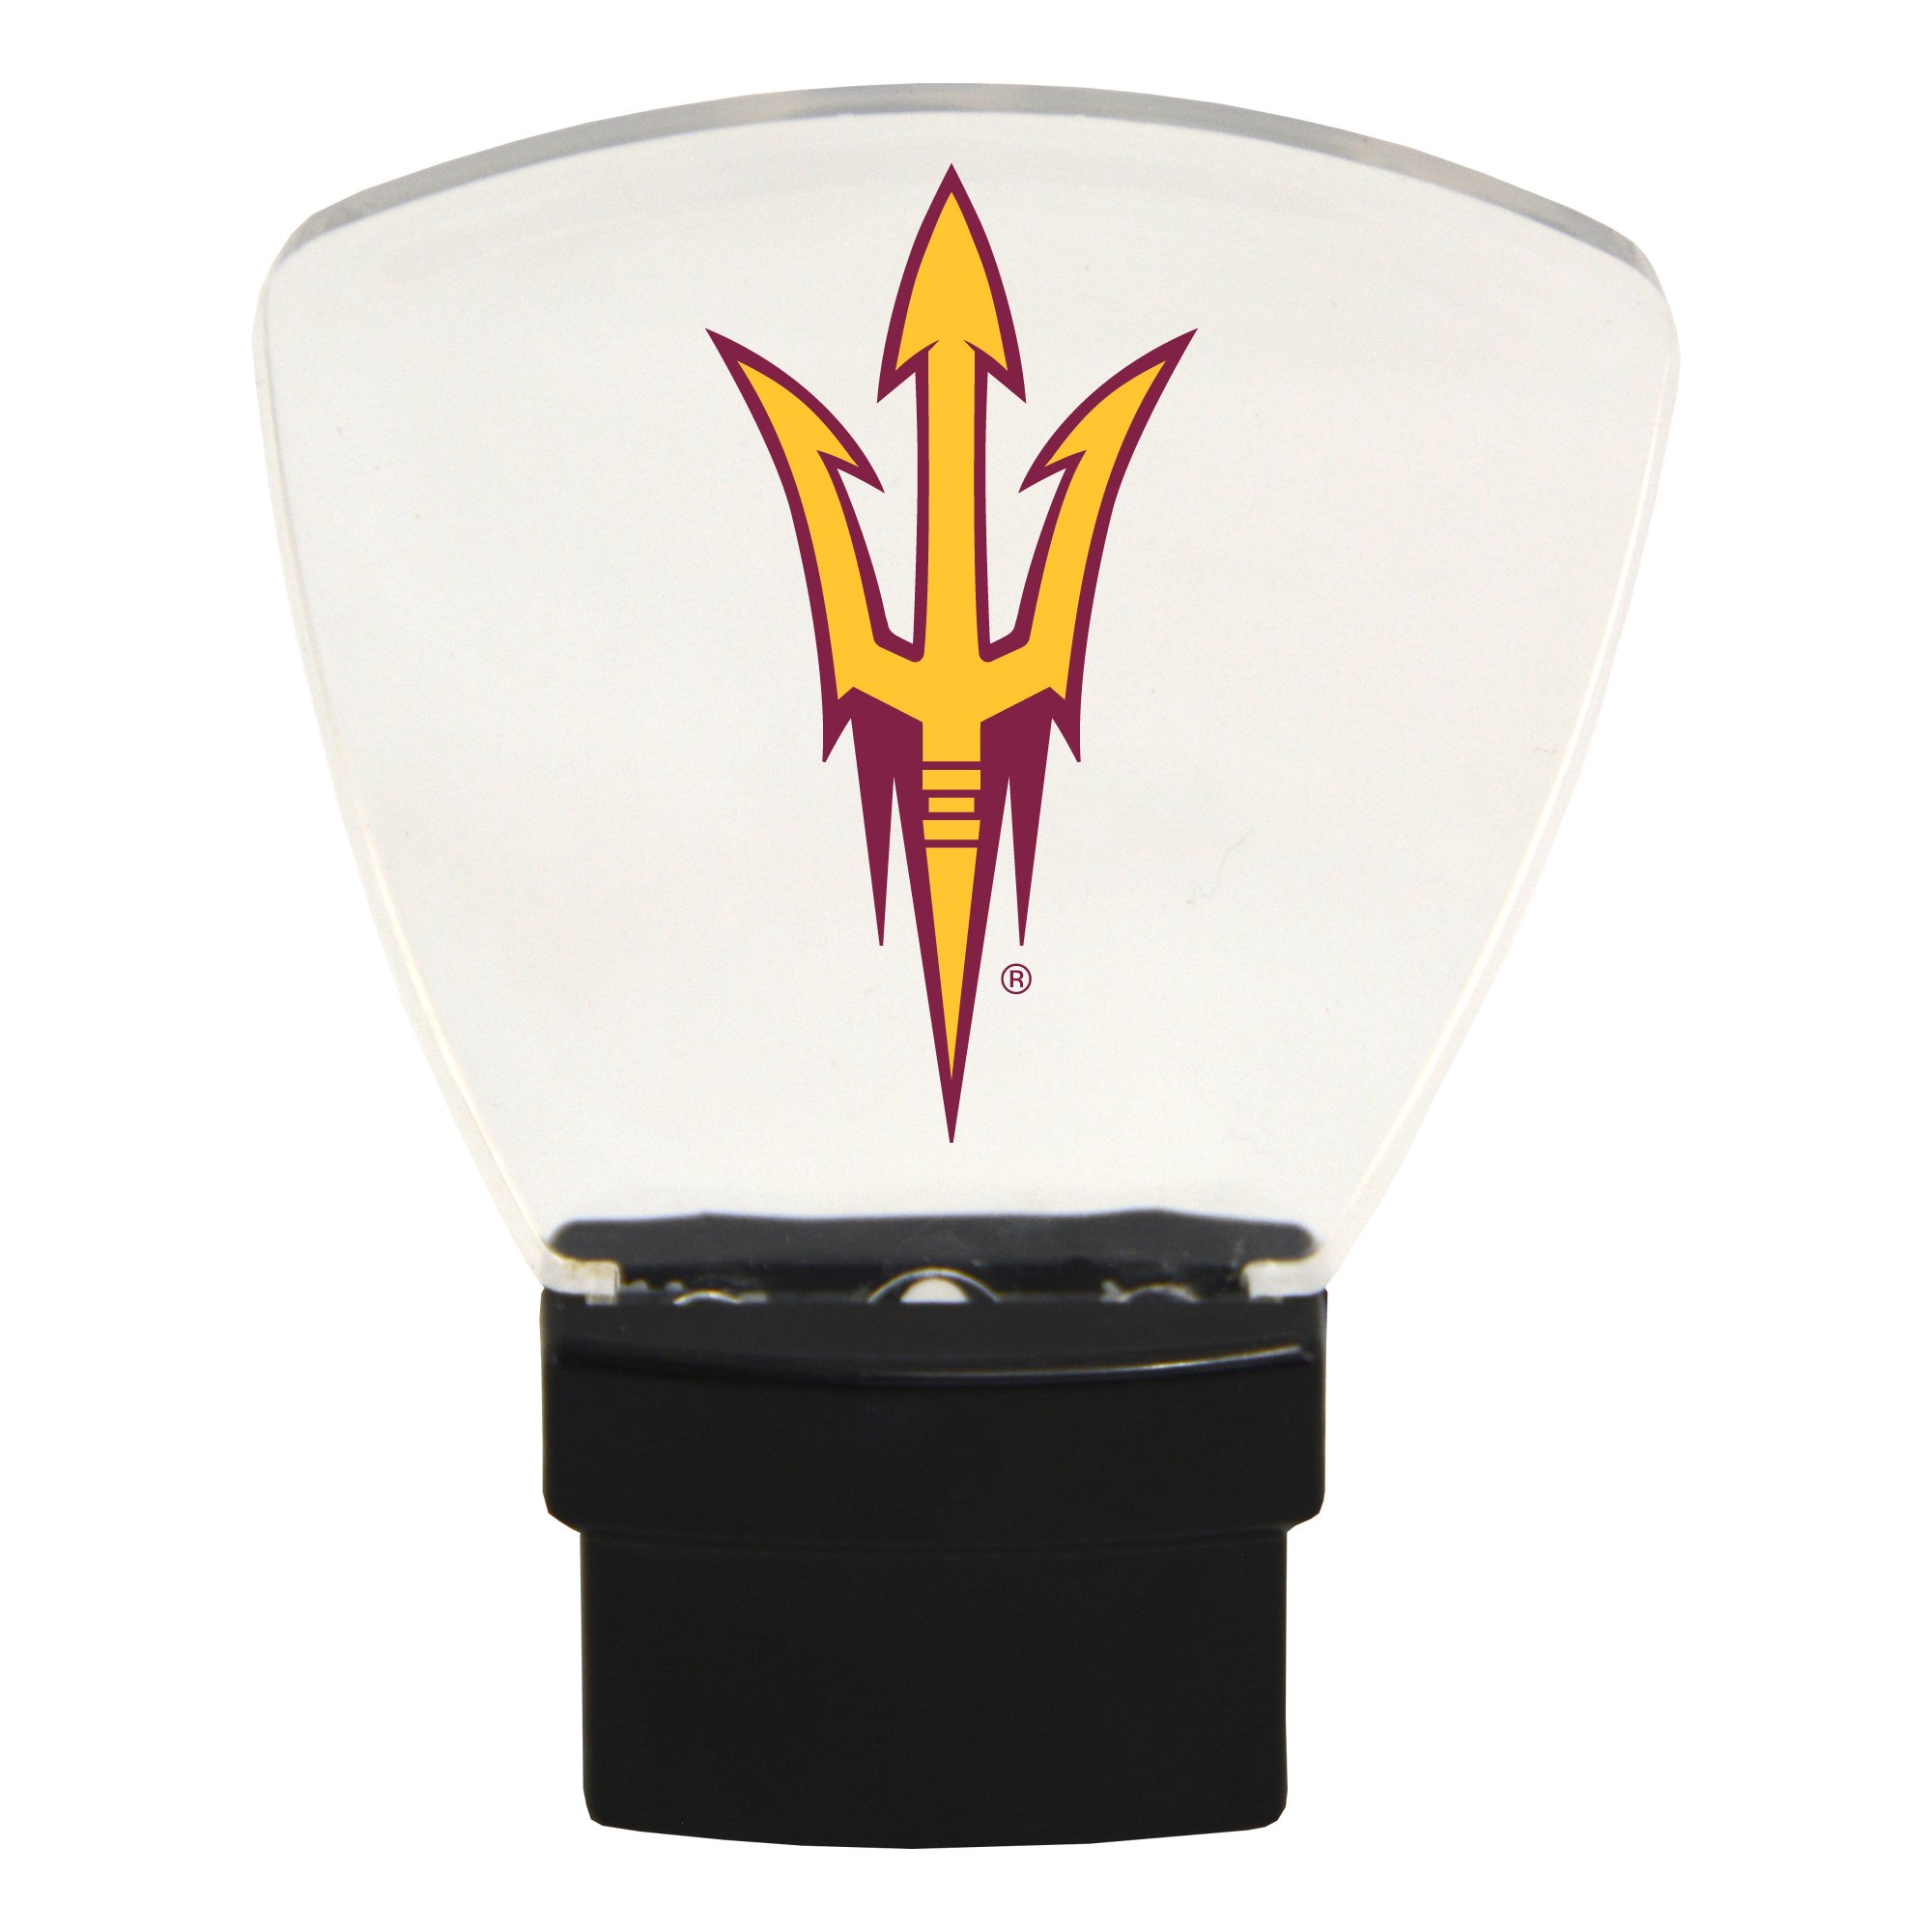 Authentic Street Signs NCAA Officially Licensed-LED NIGHT LIGHT-Super Energy Efficient-Prime Power Saving 0.5 watt, Plug In-Great Sports Fan gift for Adults-Babies-Kids Room (Arizona State Sun Devils)